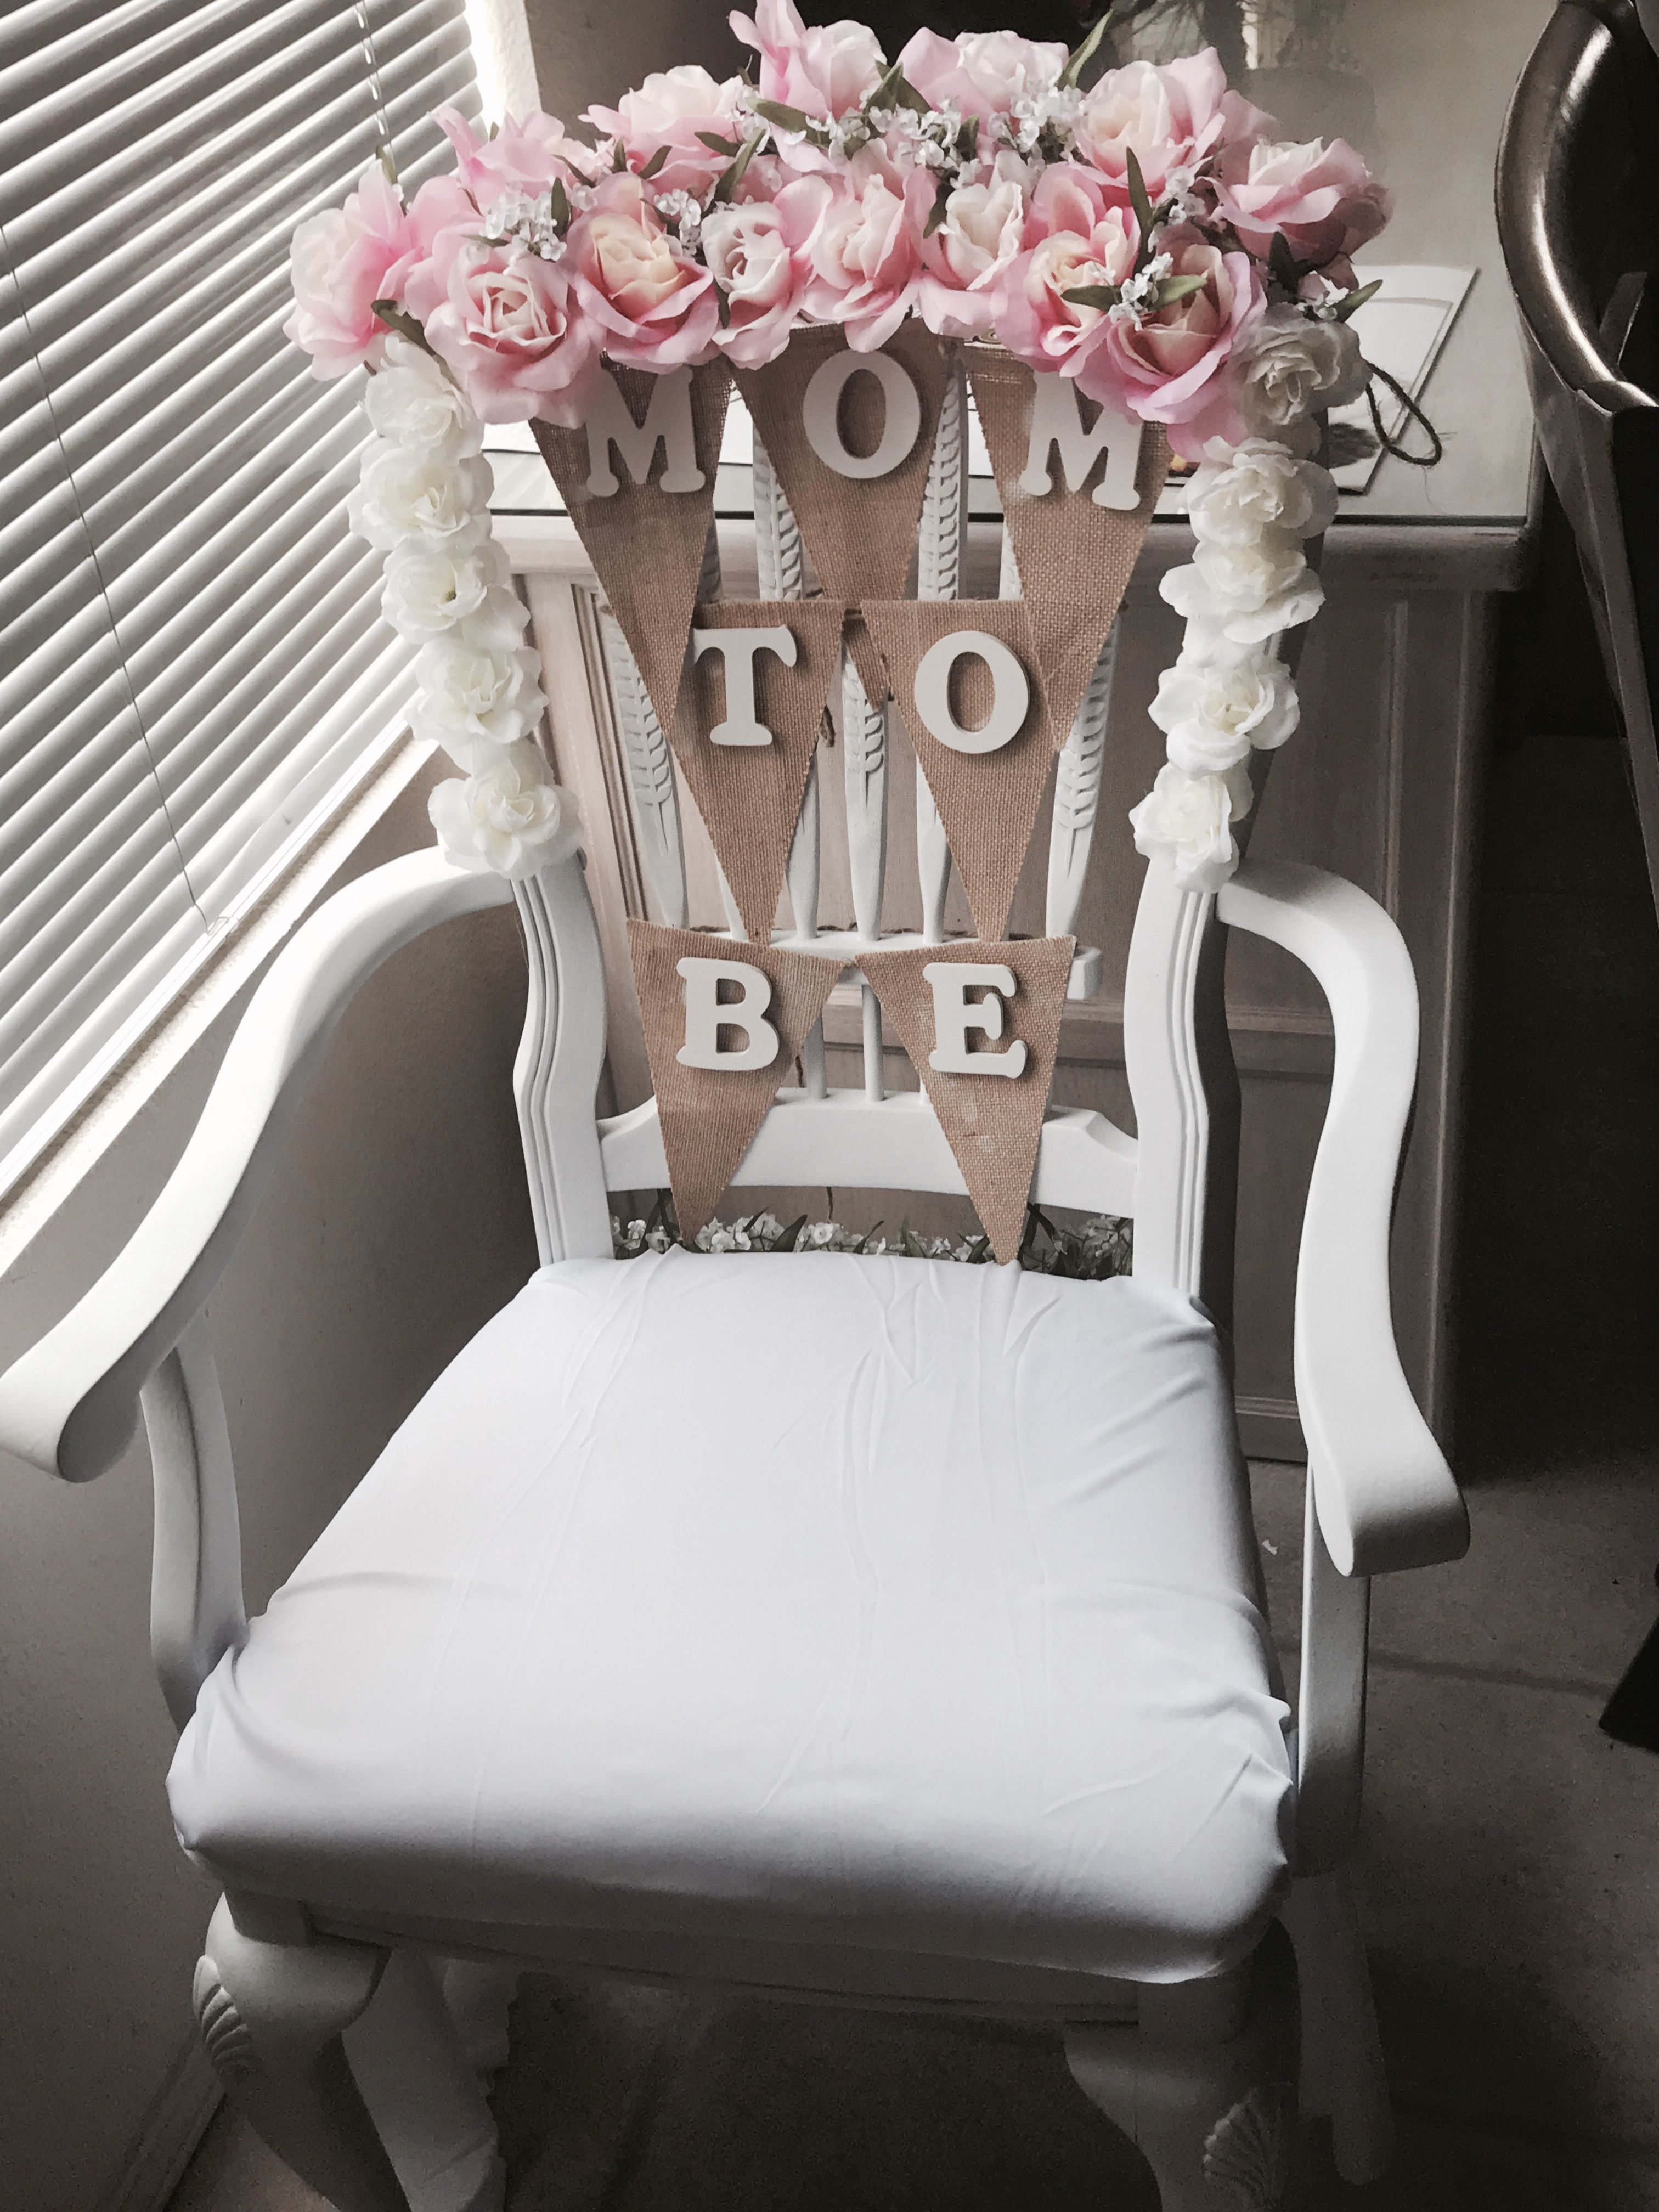 chair for baby shower theater chairs rooms to go idea flowers from walmart wood